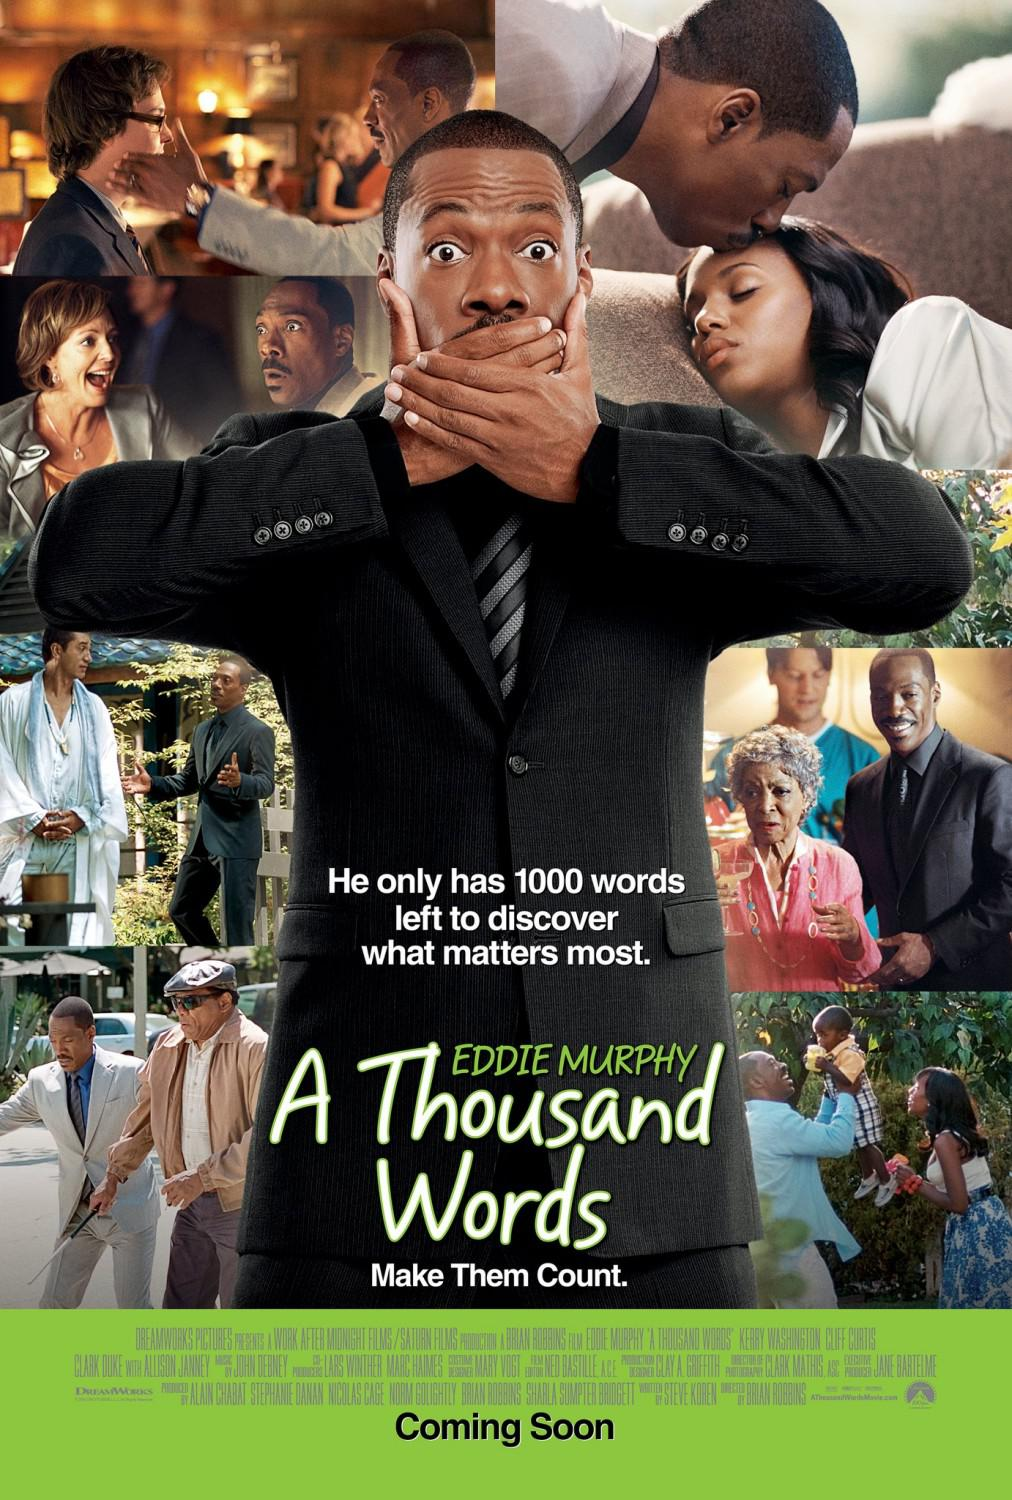 Thousand words - Eddie Murphy - he only have 1000 words left to discover what matters most